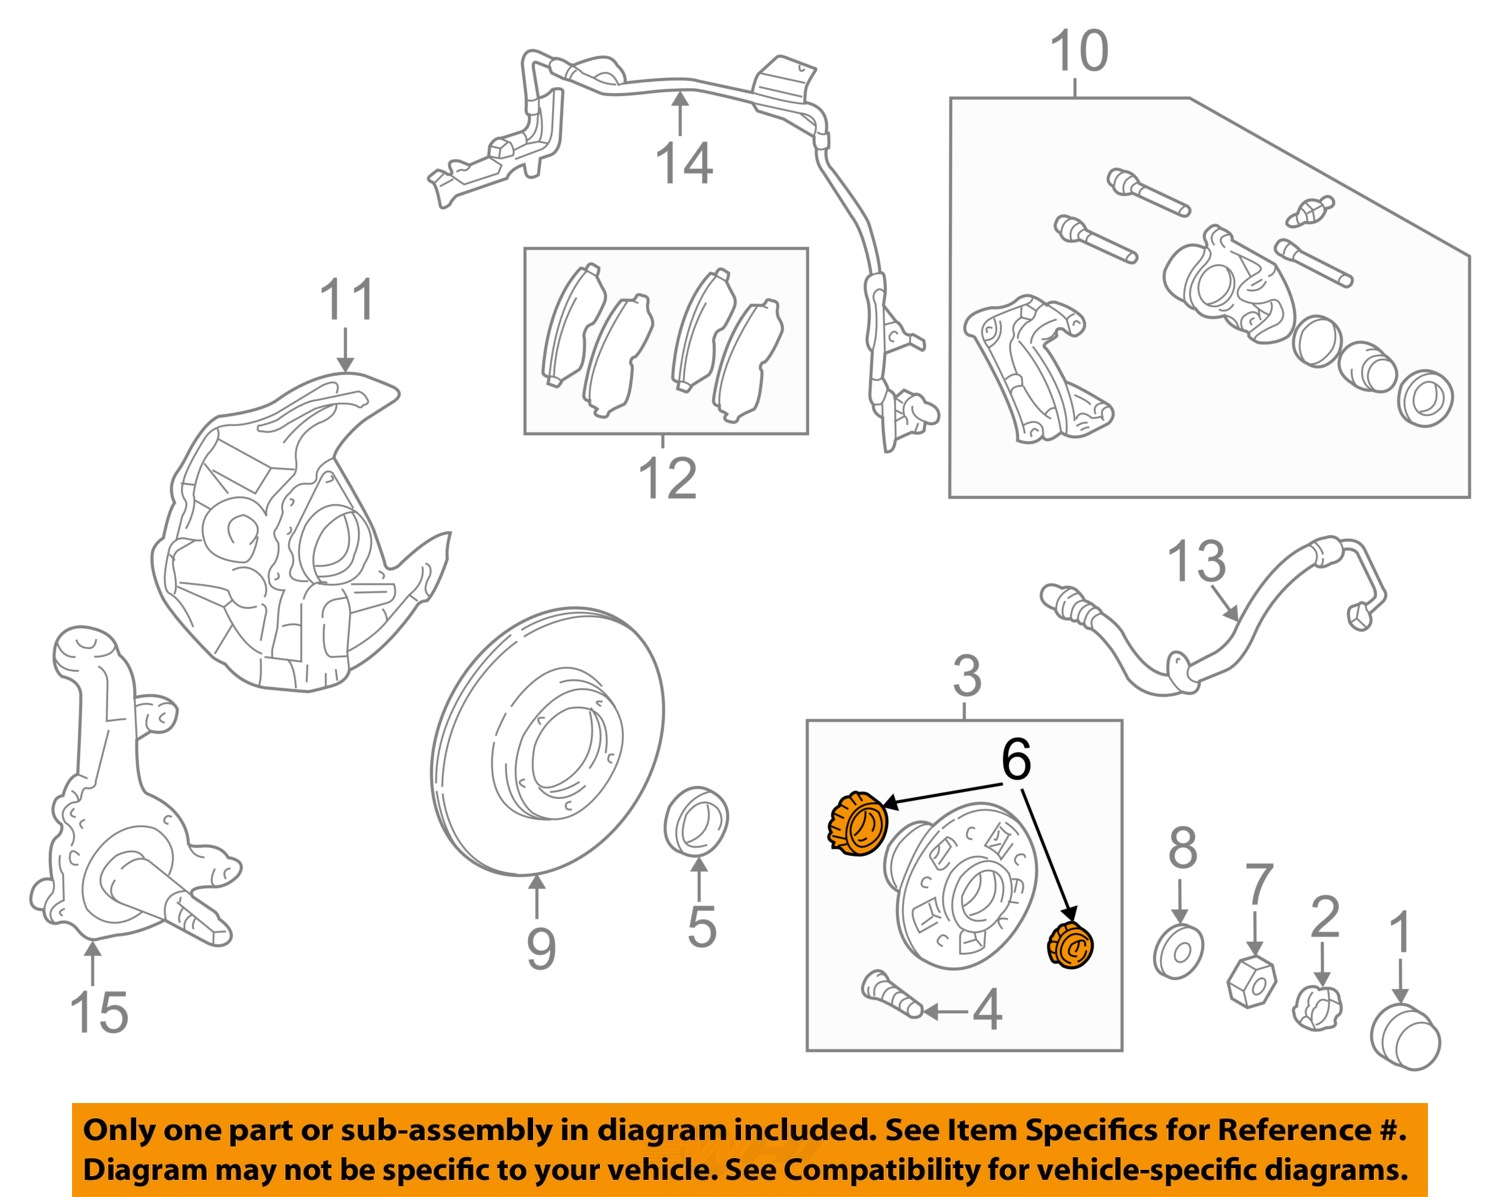 hight resolution of toyota oem 95 04 tacoma axle bearing and hub assembly 2003 toyota tacoma parts diagram 2013